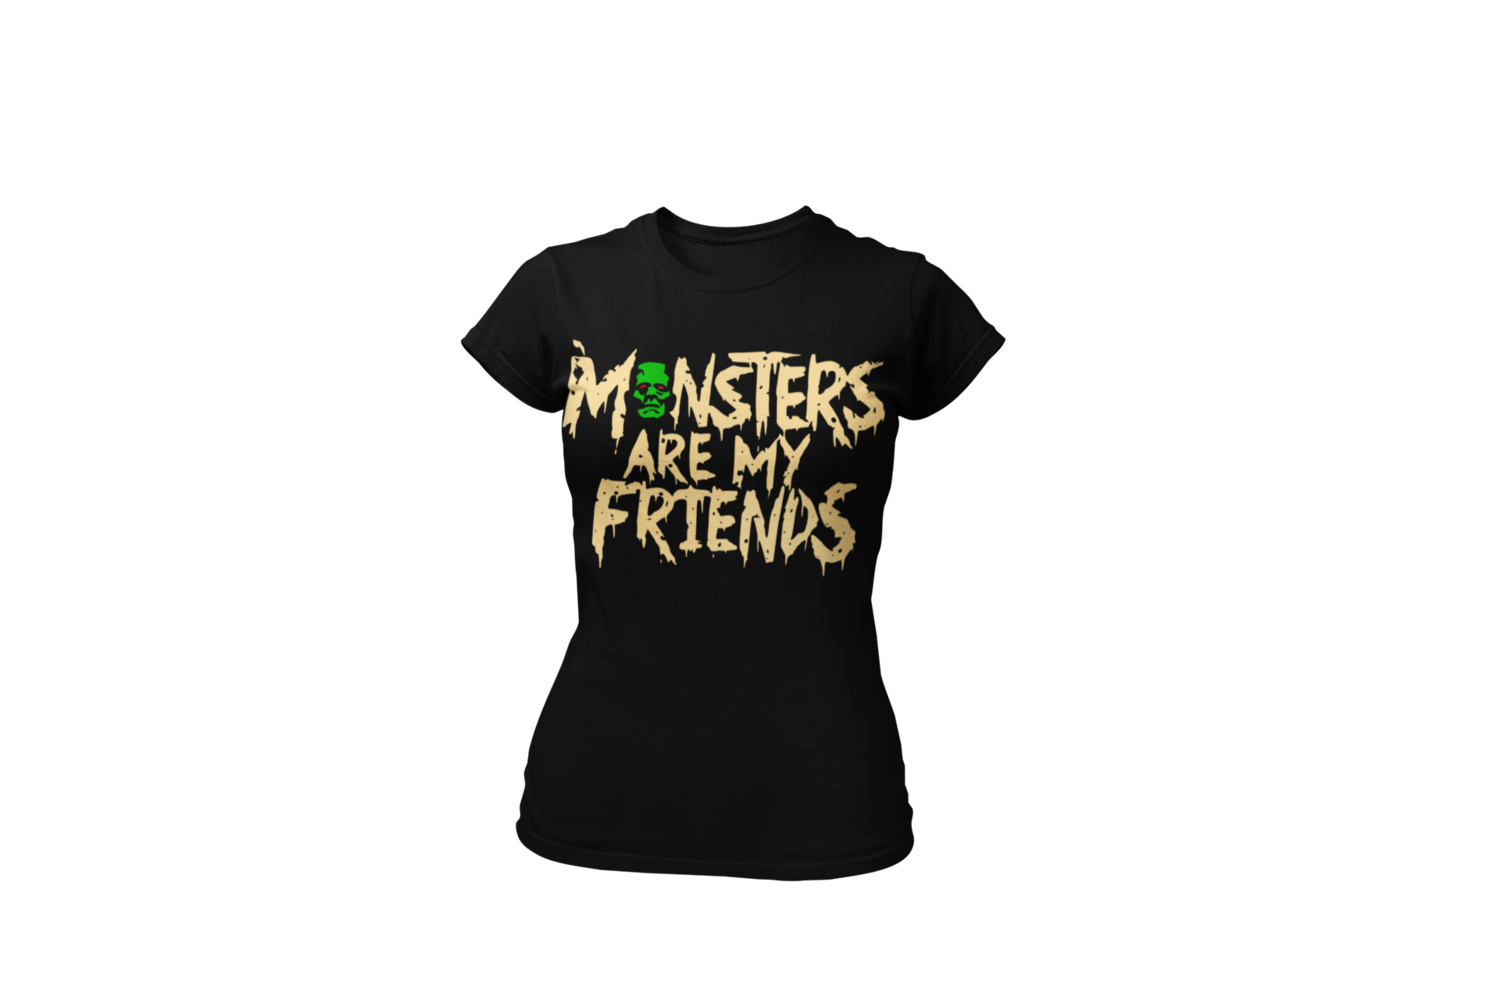 MONSTERS ARE MY FRIENDS T-SHIRT FOR WOMEN